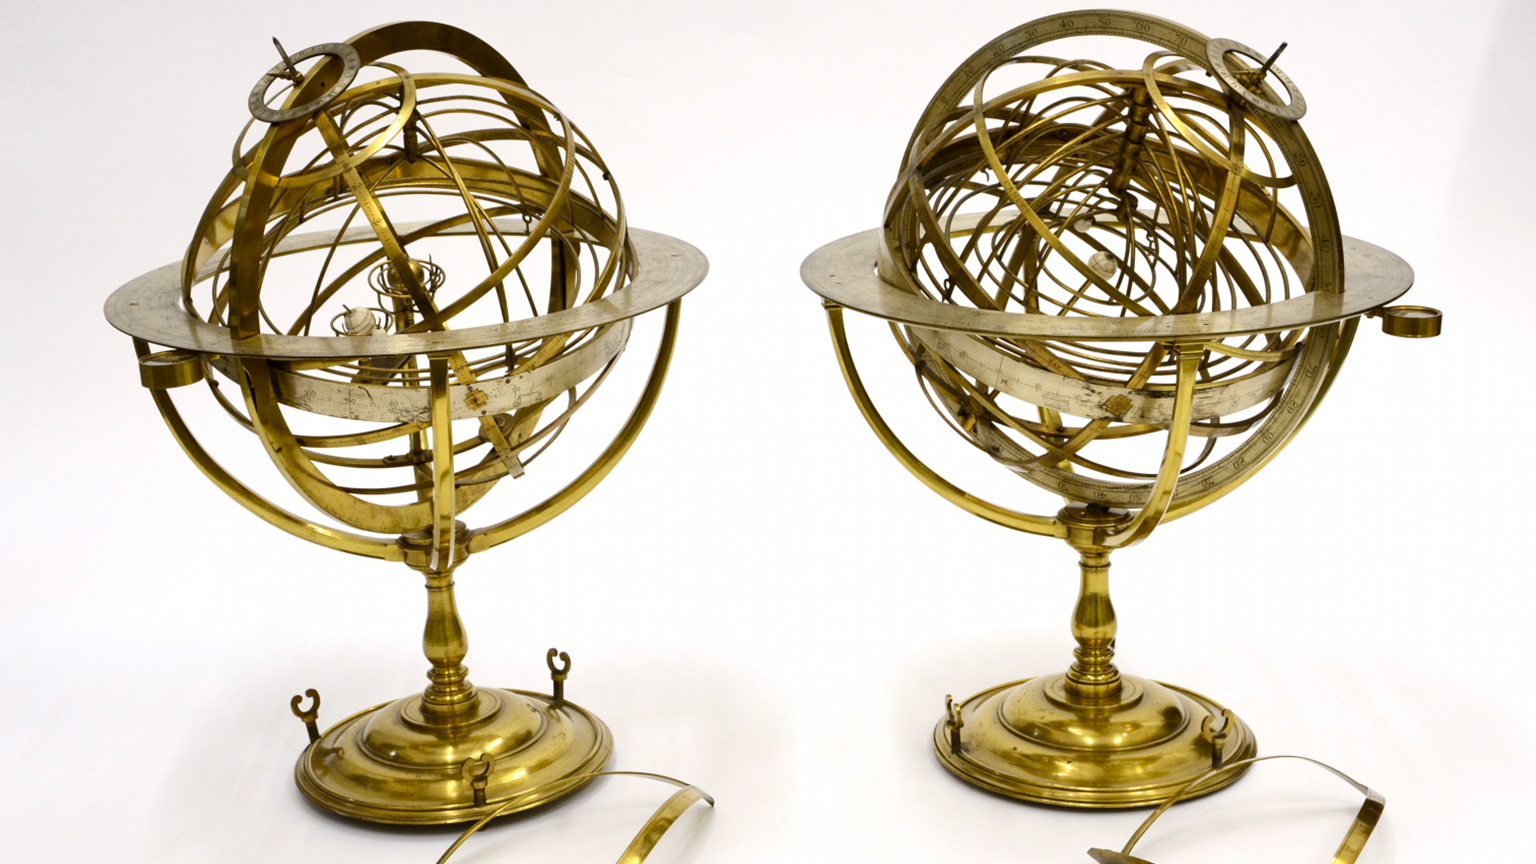 Ptolemaic Armillary Sphere and Copernican Armillary Sphere, by John Rowley, London, c. 1700, Invs. 15386 and 22258